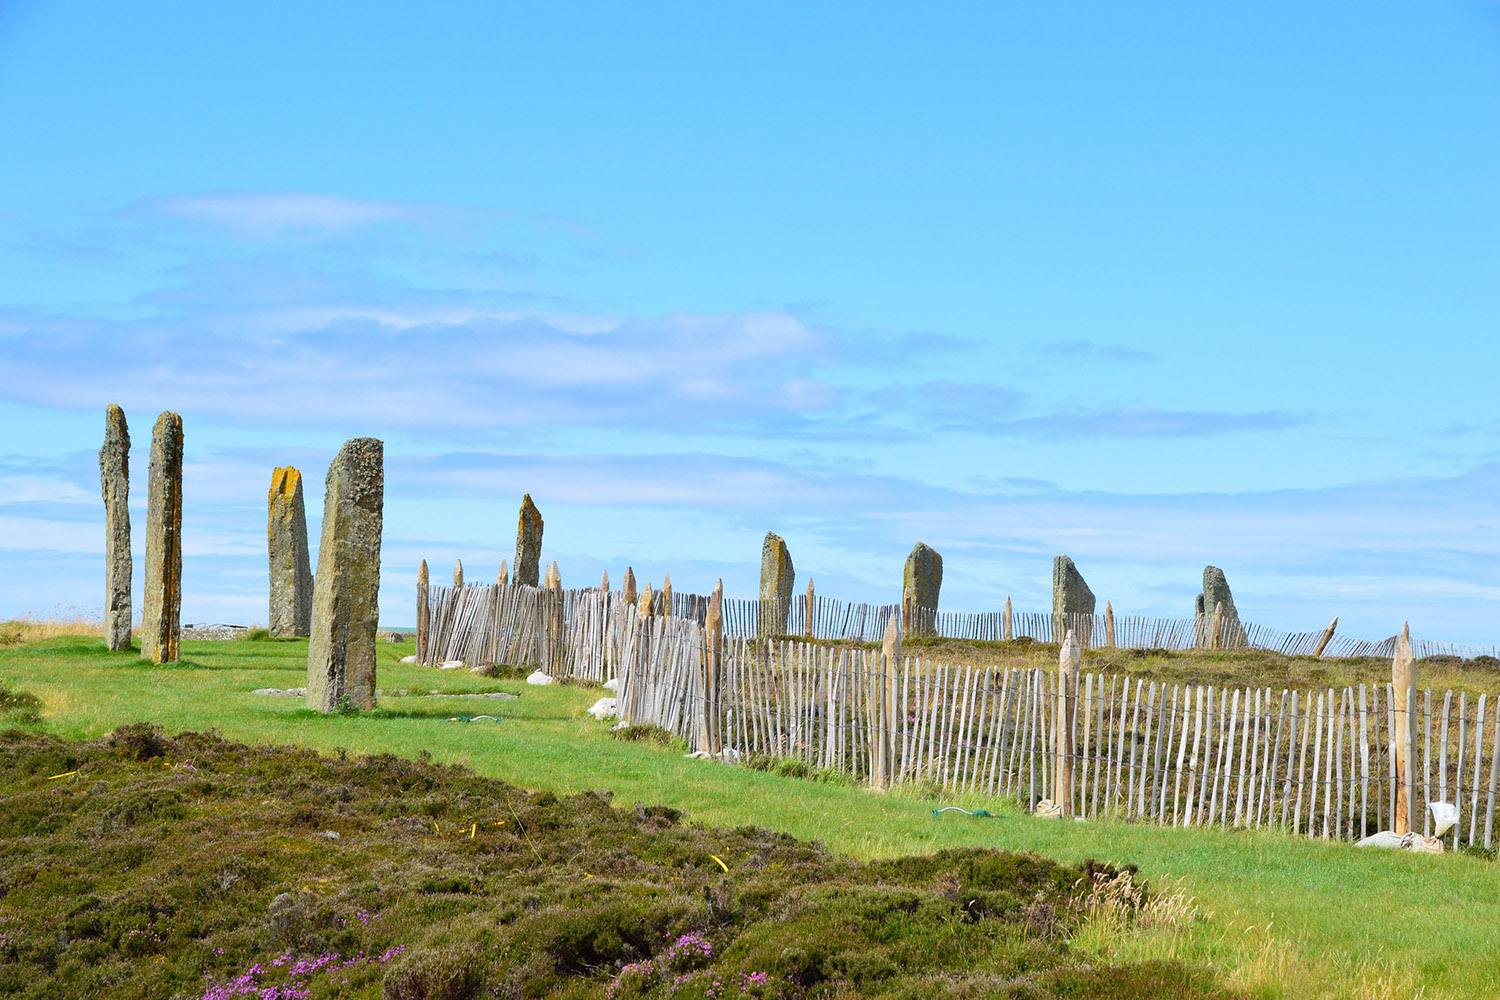 The Ring of Brodgar is visited during our prehistoric tour of Scotland